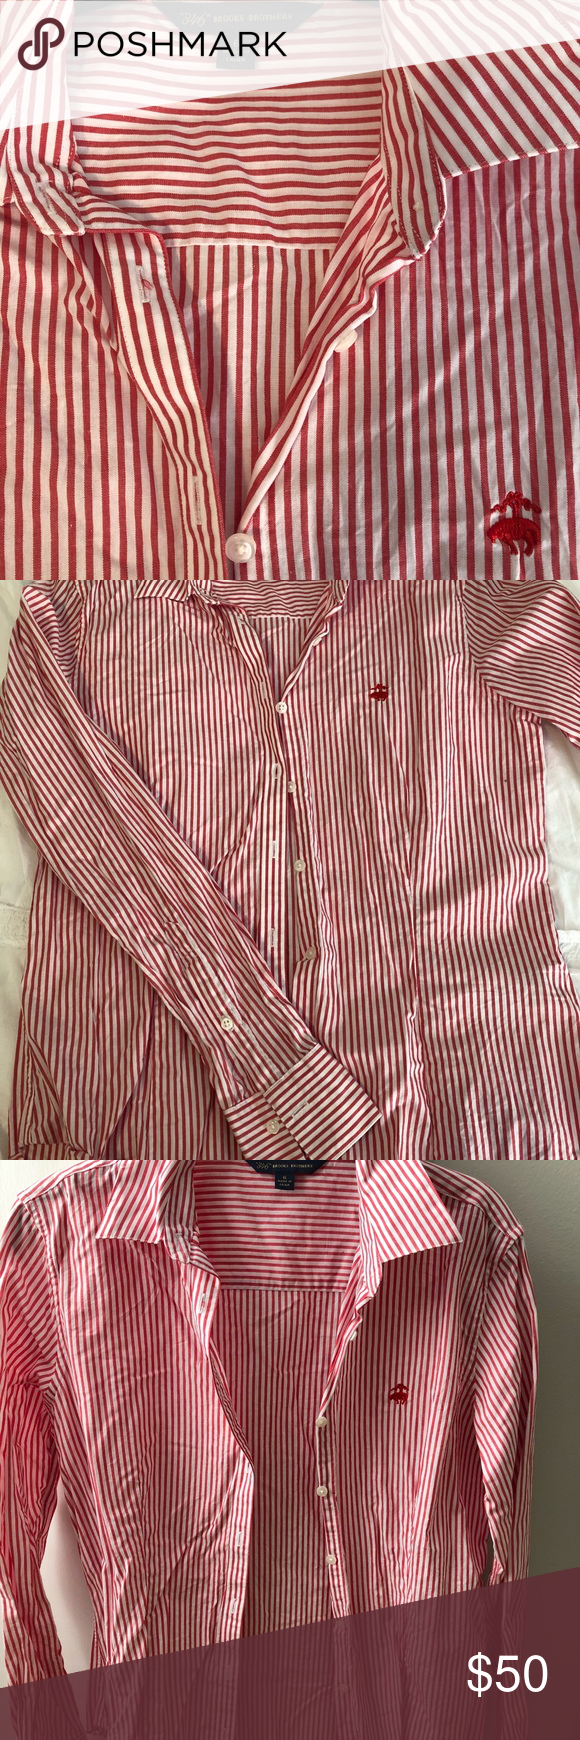 c87cfd02f6b Womens Red And White Vertical Striped Shirt - Ortsplanungsrevision ...